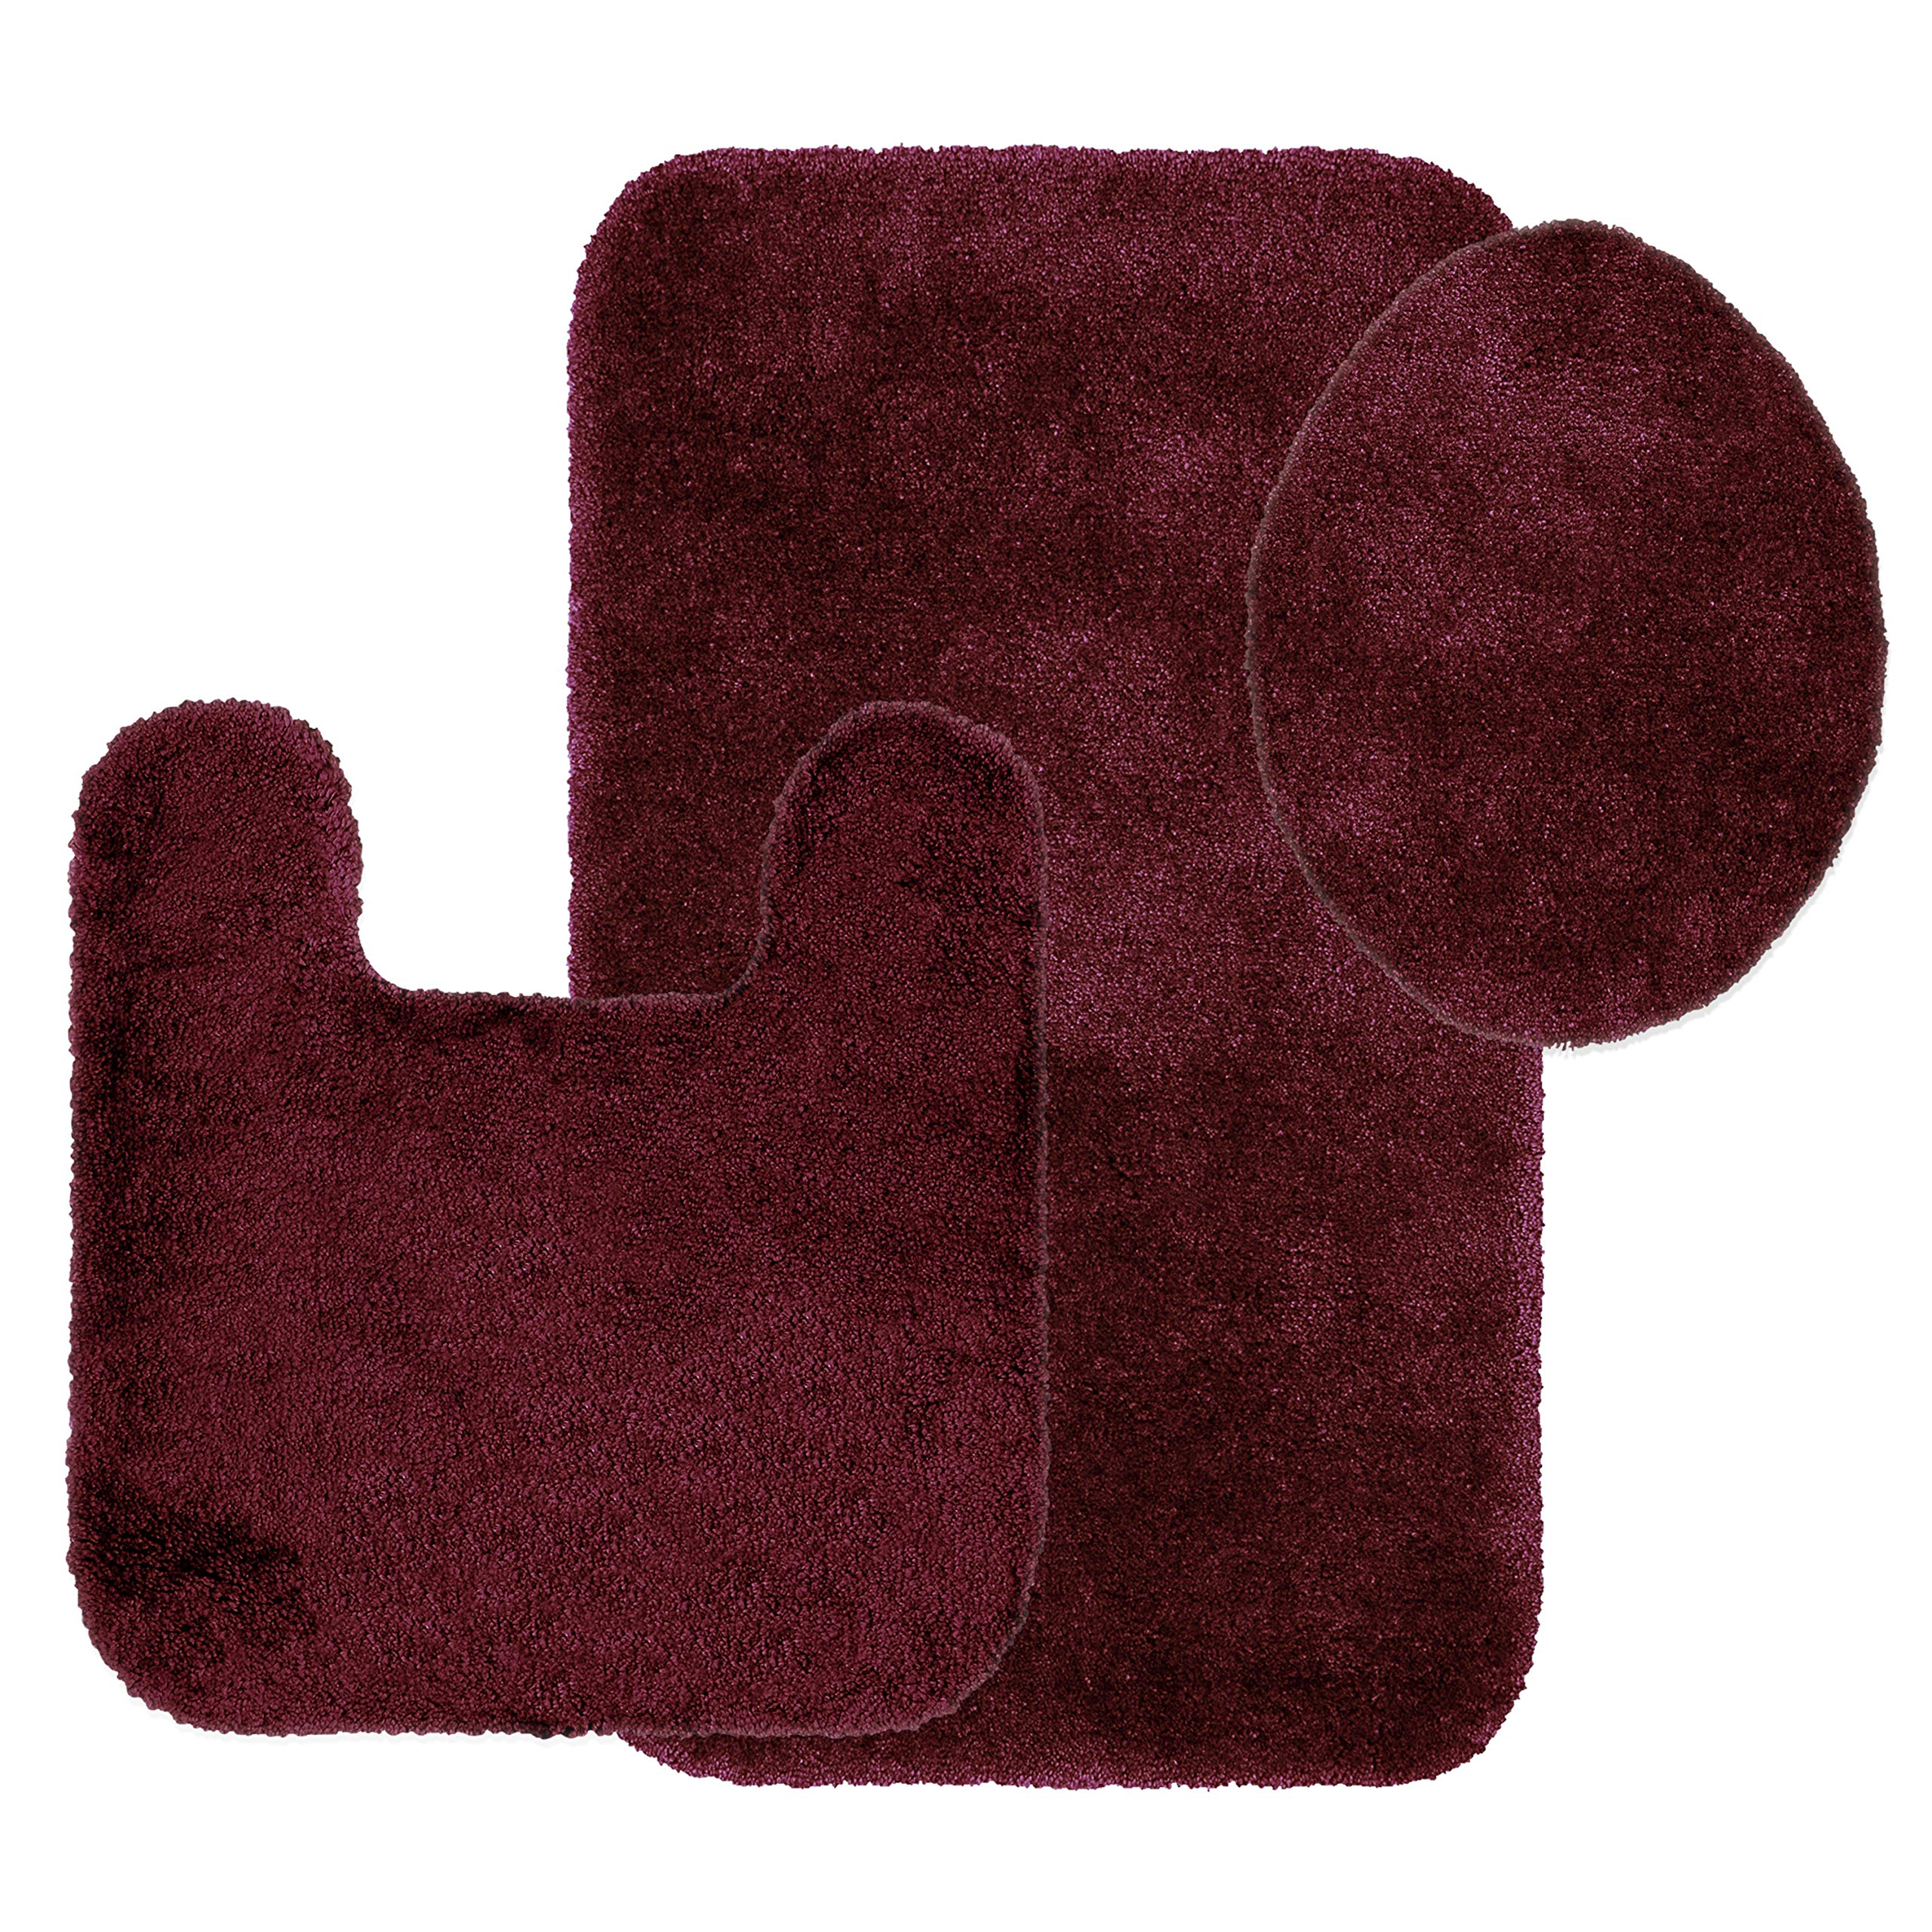 Maples Rugs Bathroom Rugs Colorsoft 3pc Non Slip Washable Bath Mats & Toilet Lid Cover Set [Made in USA] Soft & Quick Dry Crimson Victory